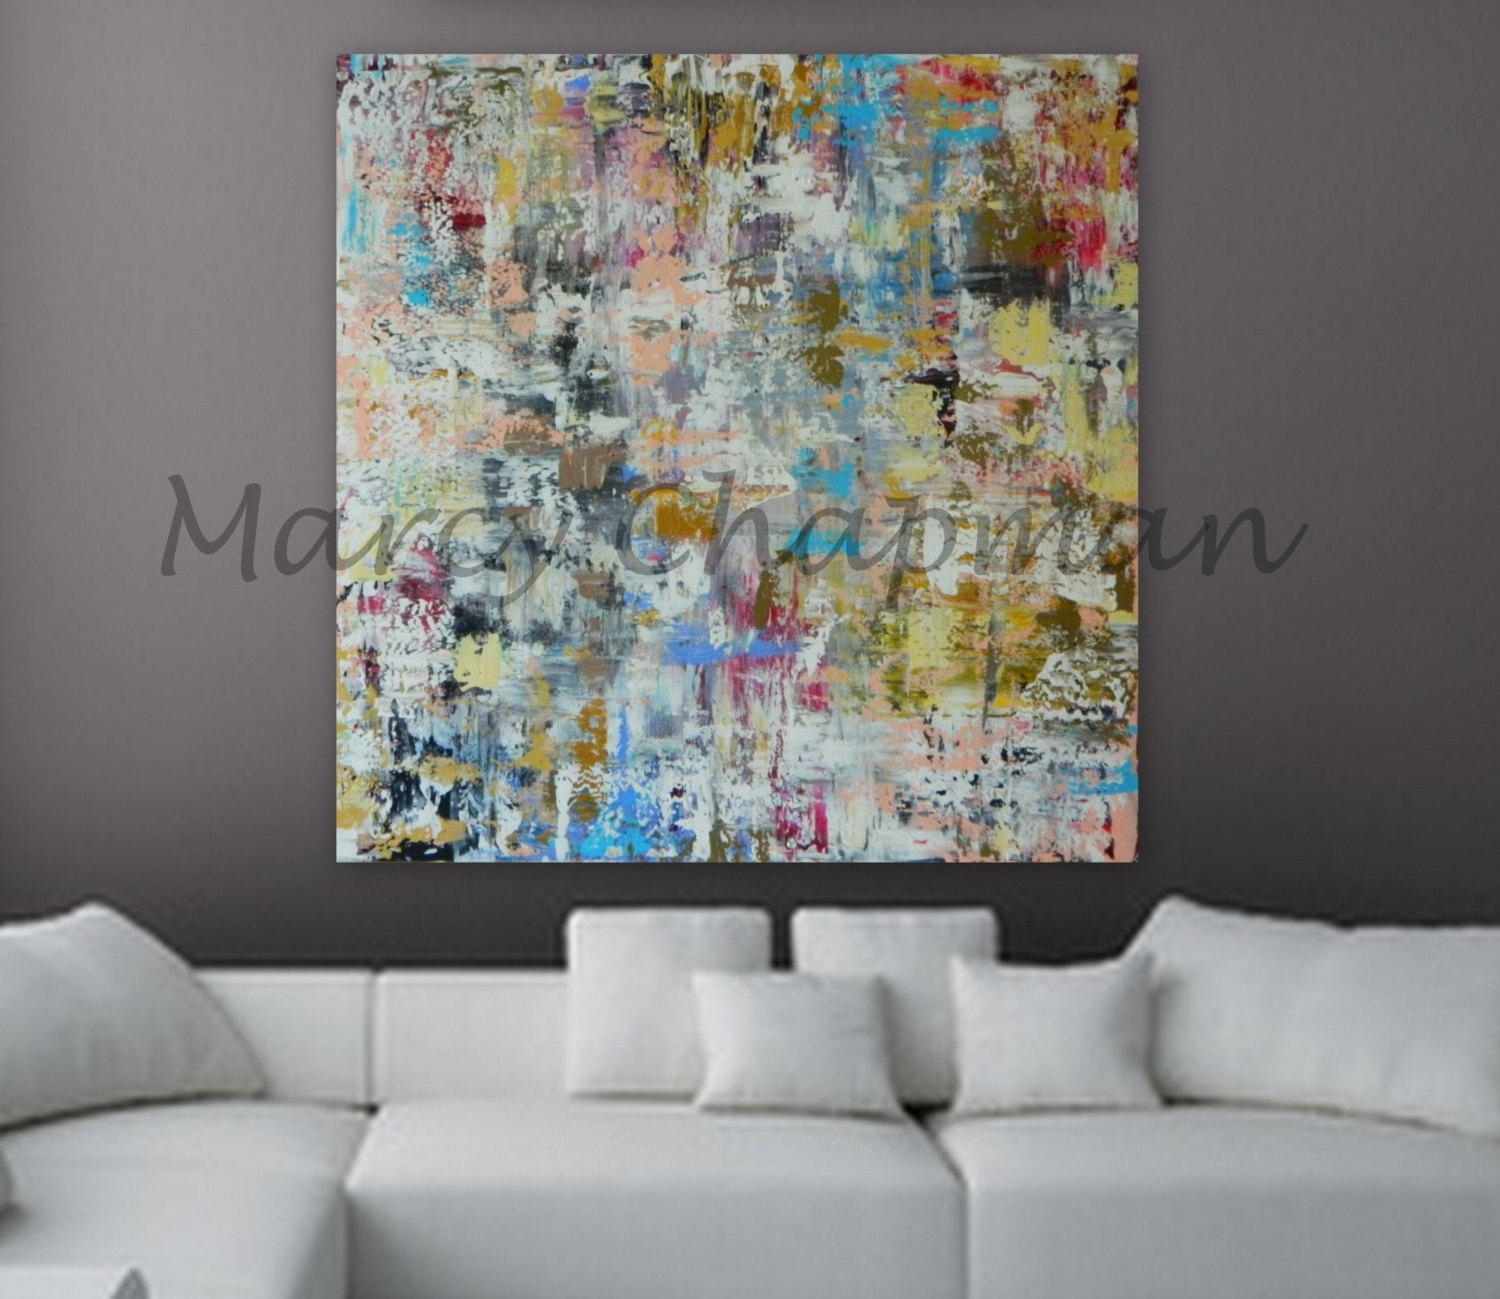 Xl, Large, Huge Abstract Painting 46 X 46 Unstretched Canvas Intended For 48X48 Canvas Wall Art (View 8 of 20)